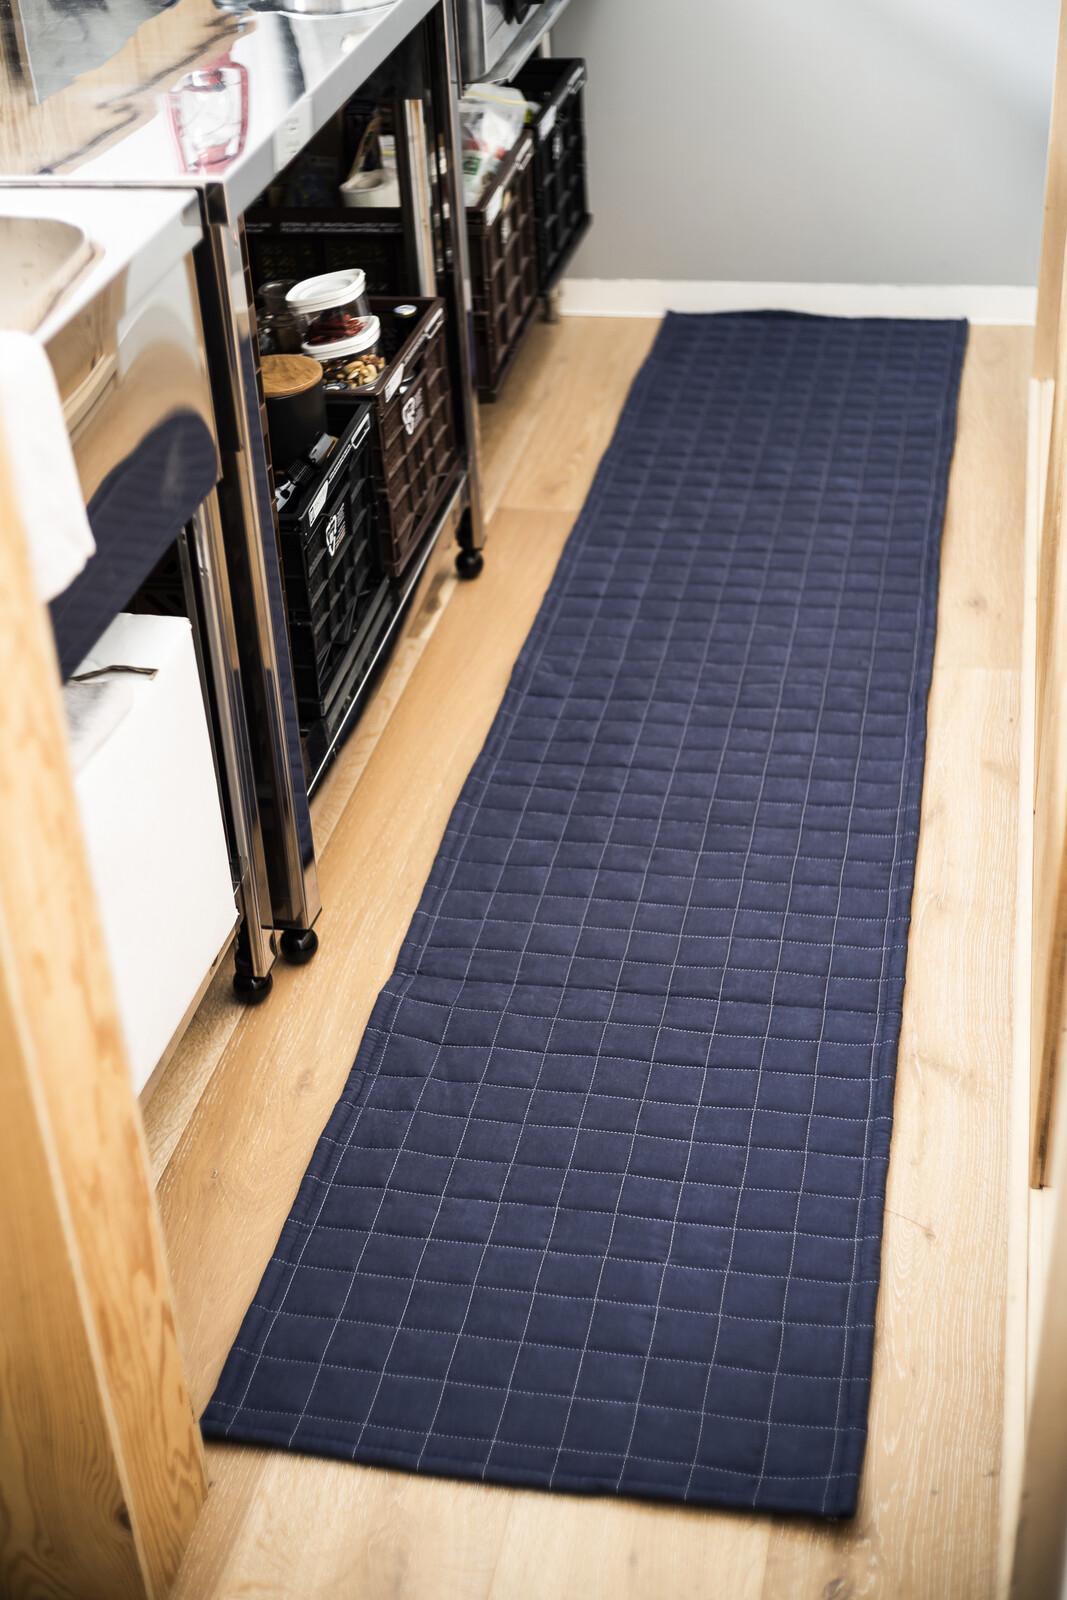 Peach Kitchen Mat Export Japanese Products To The World At Wholesale Prices Super Delivery